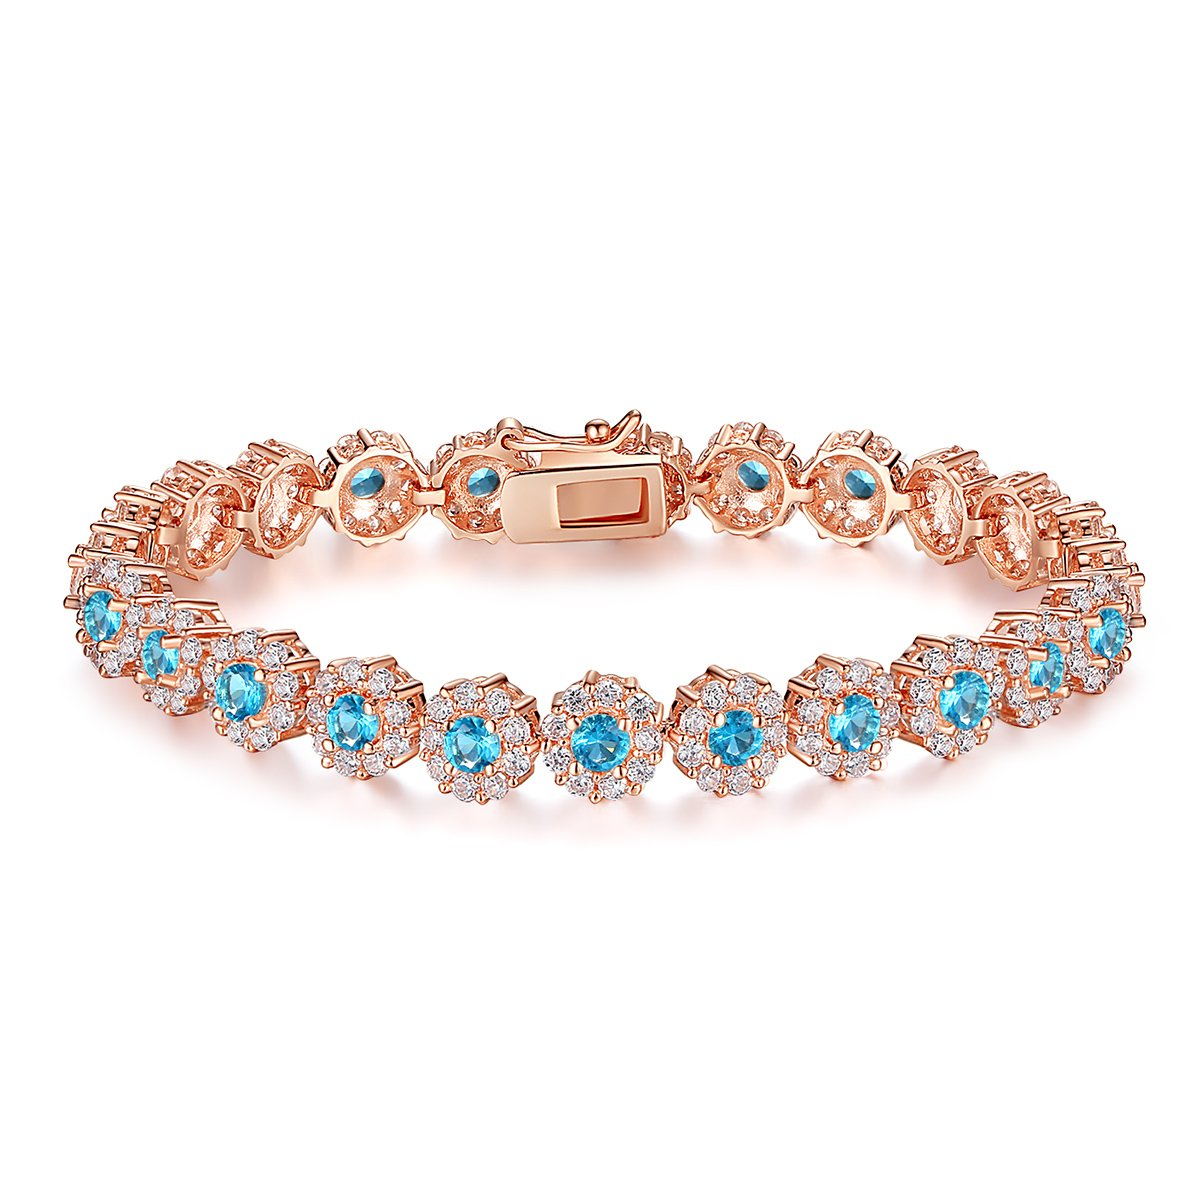 BAMOER Classic Rose Gold Plated Bracelet Sparkling Sky Blue Cubic Zirconia Stones Women Girls Her 7.5 inches by BAMOER